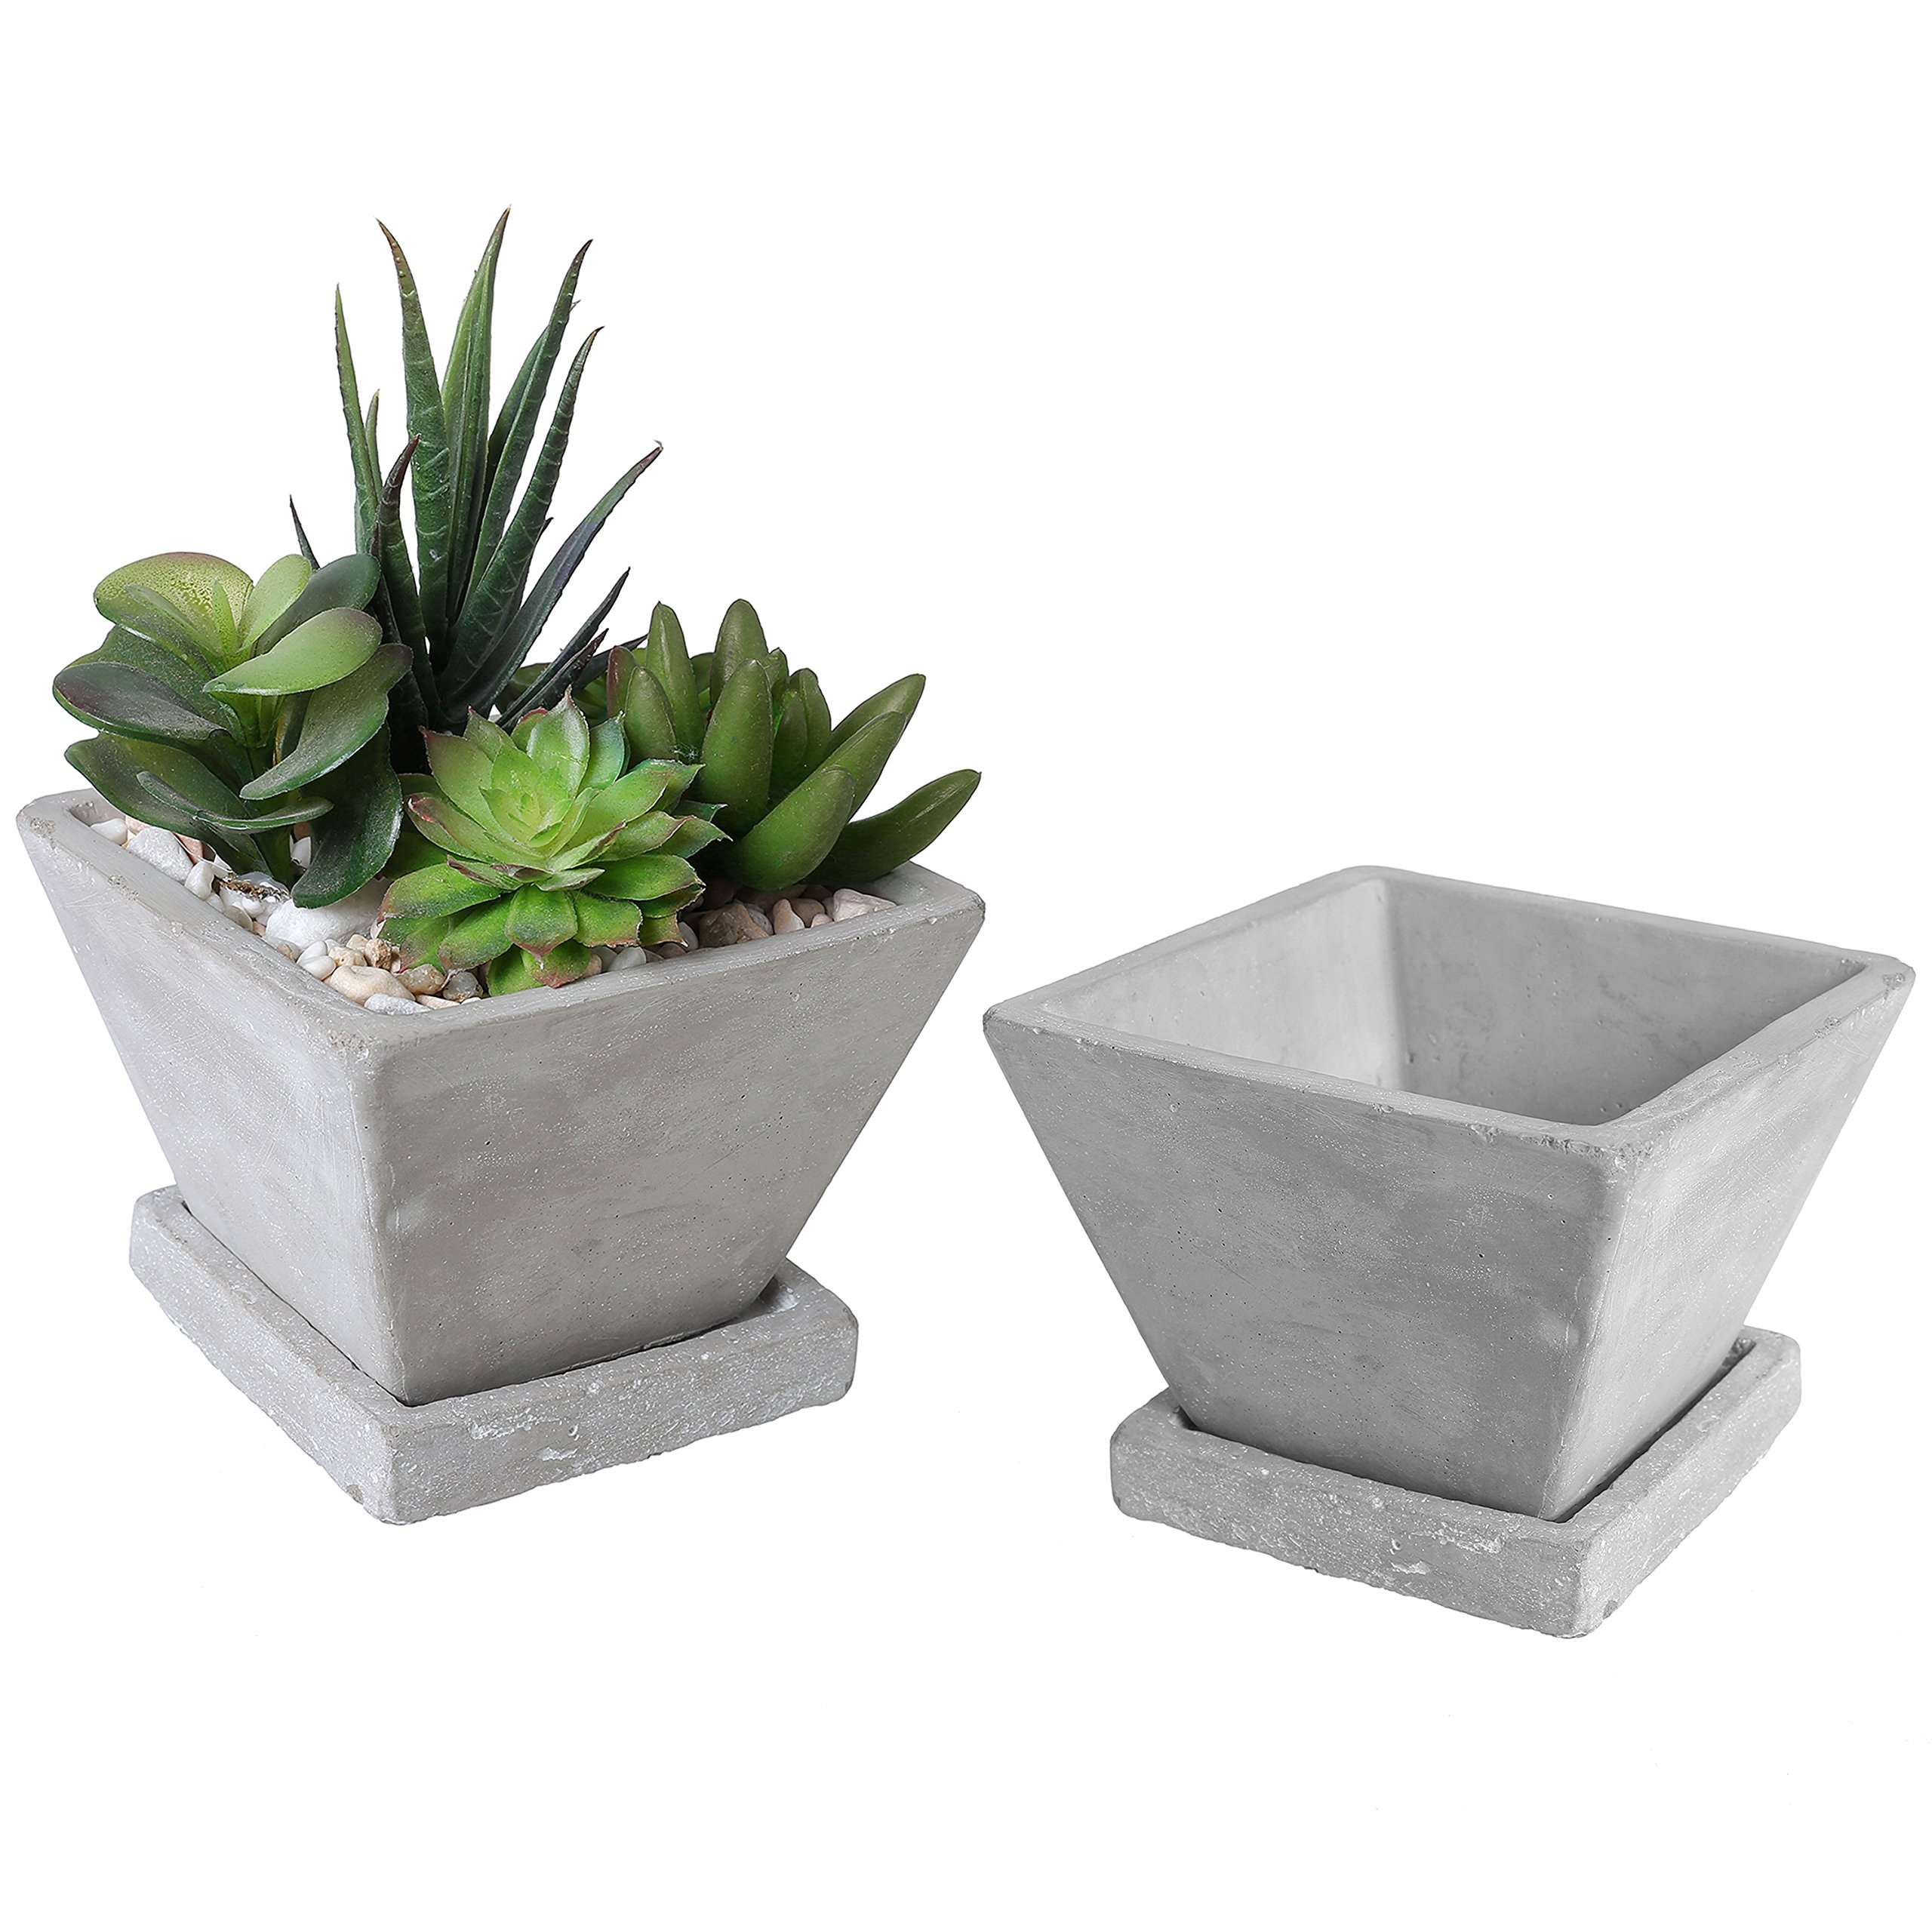 Trapezoid Shaped Clay Mini Succulent Planters, Cactus Pots with Square Saucers, Set of 2, Gray